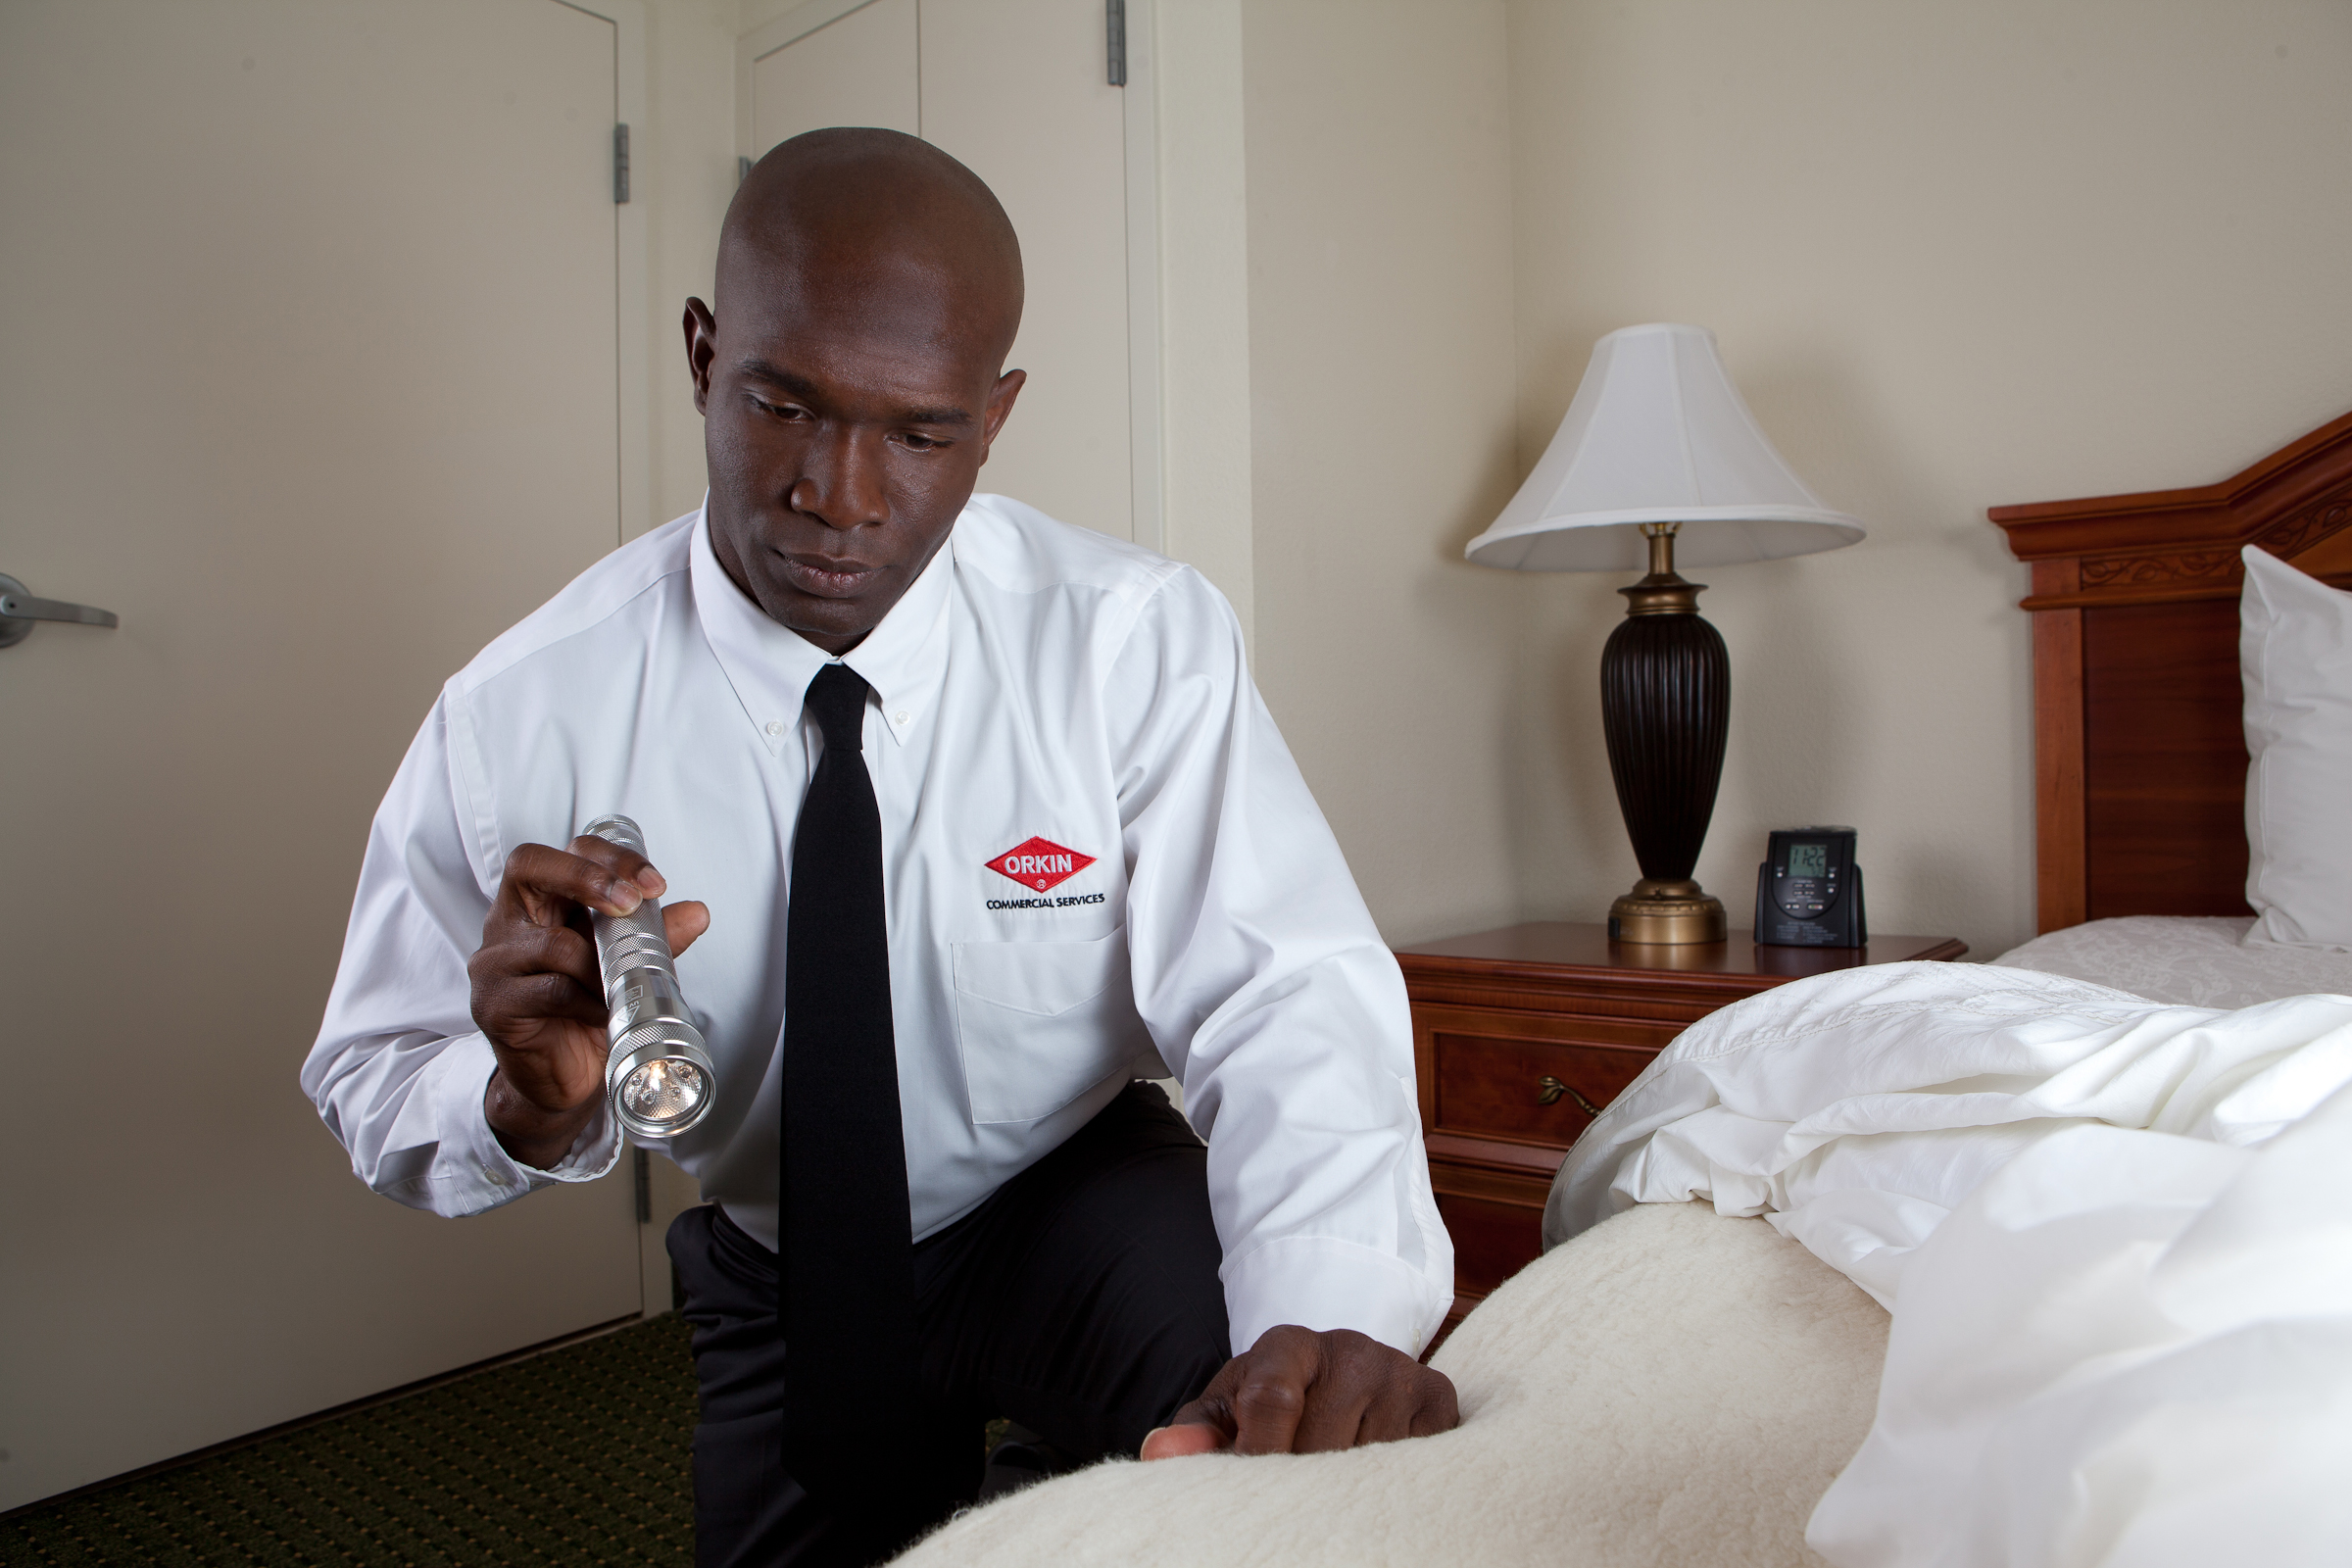 Proactive Bed Bug Service For Hotels